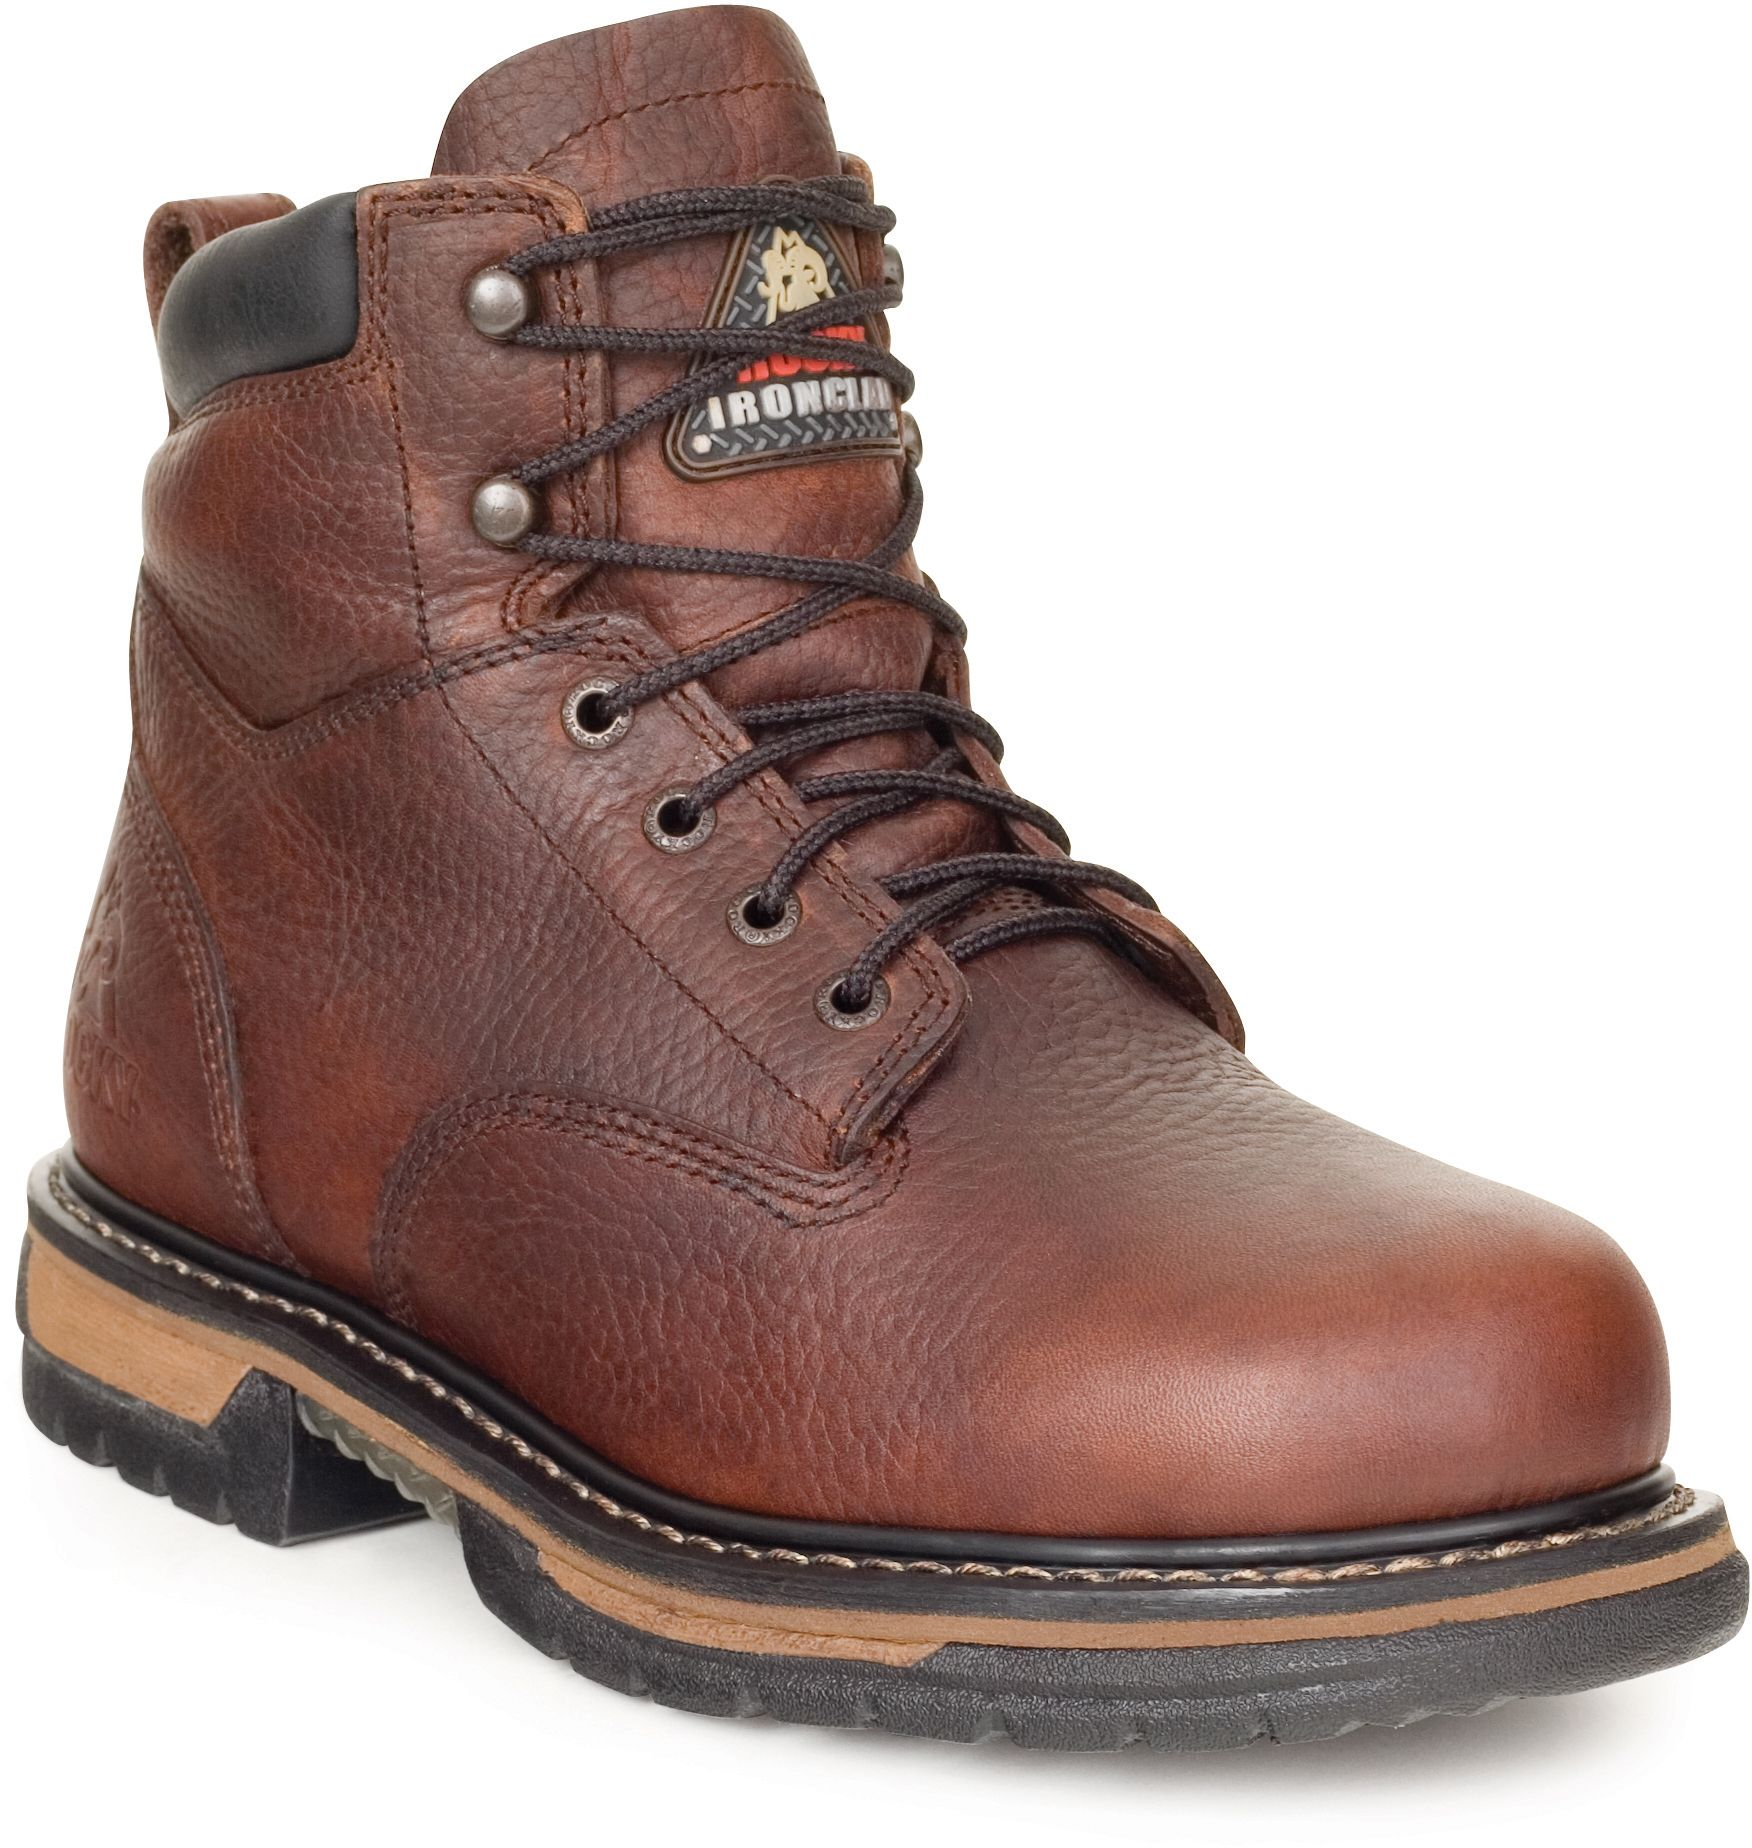 f39b509131a 5696 Men's Work WP IronClad Rocky Boots - Bridle Brown | Rocky Boots ...